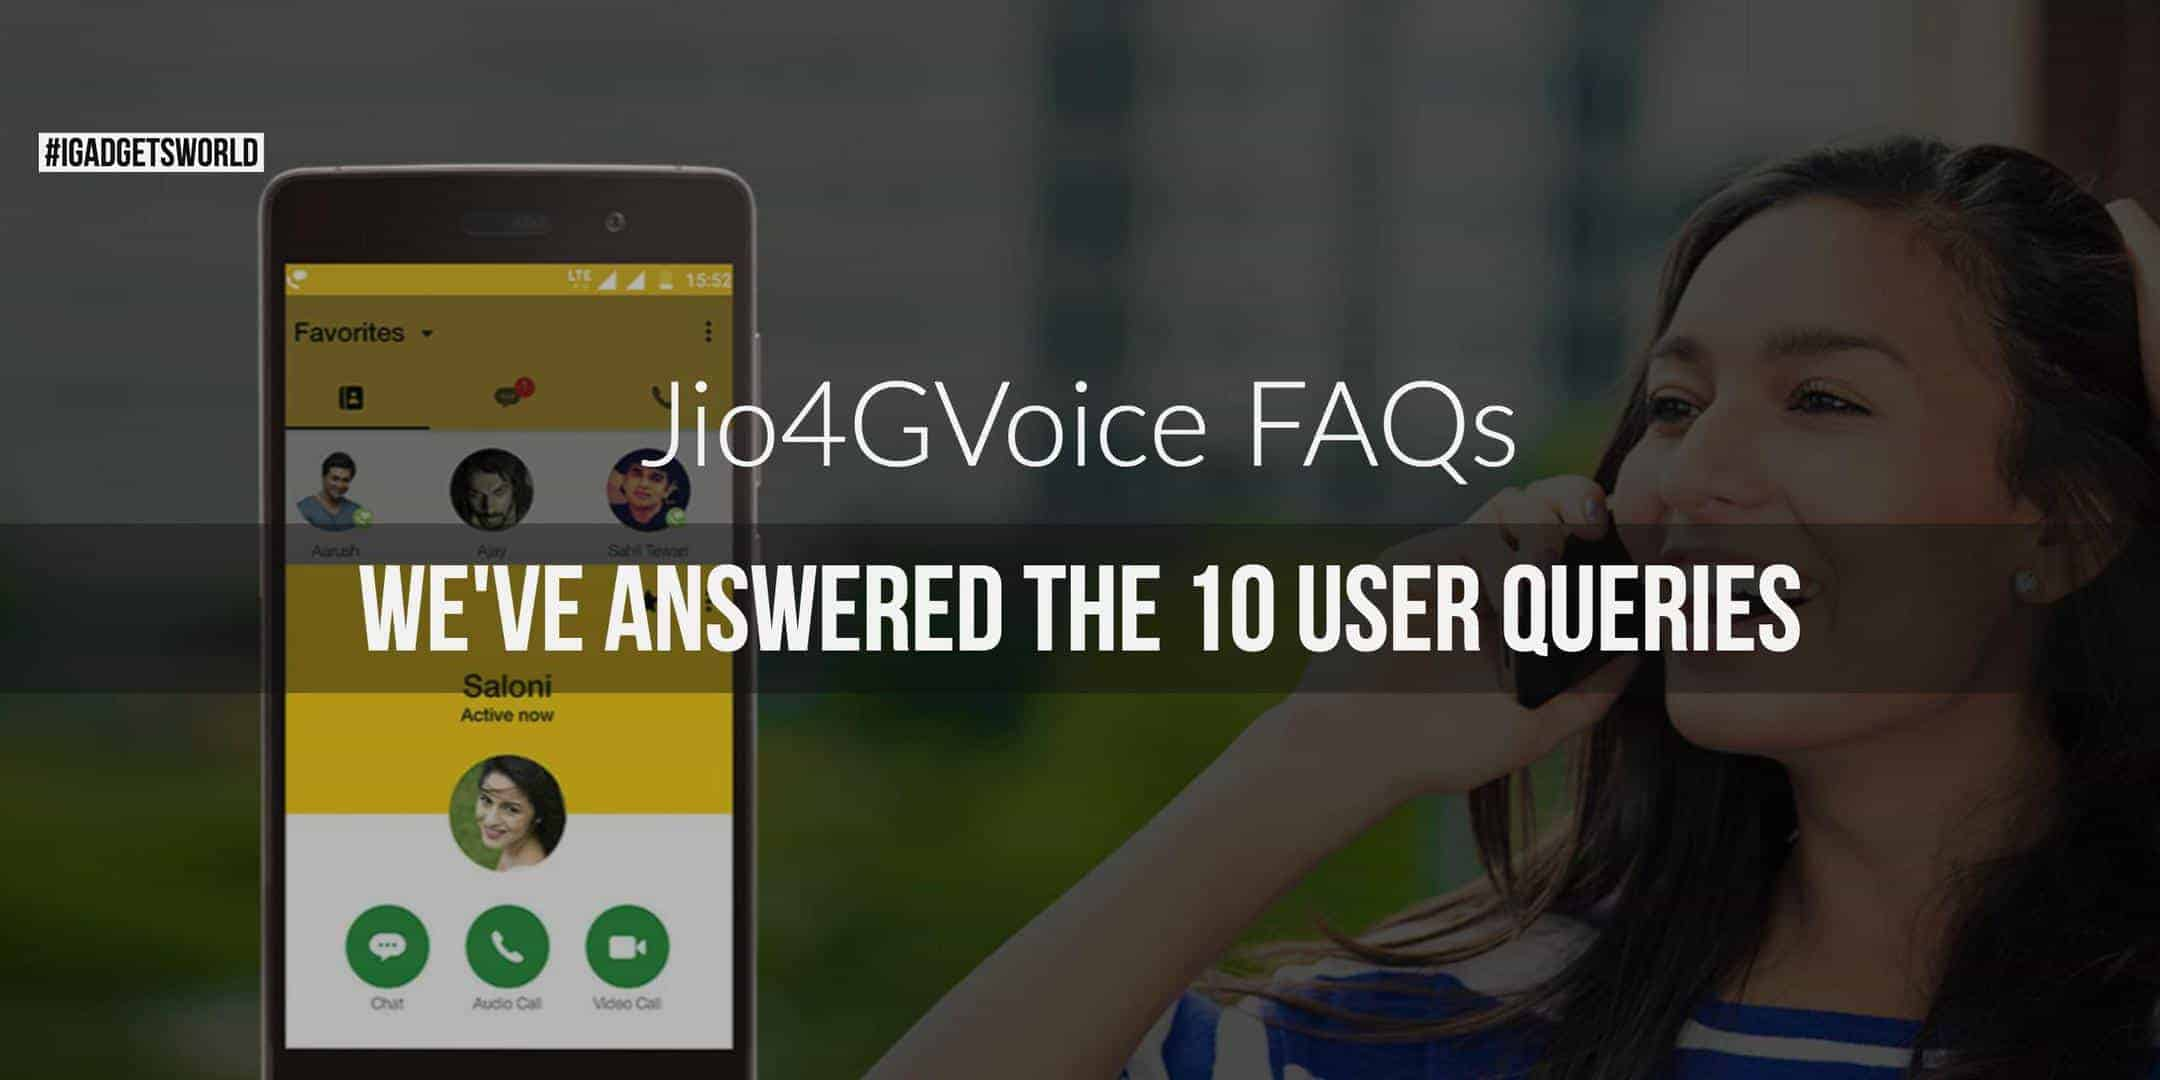 jio4gvoice-app-faqs